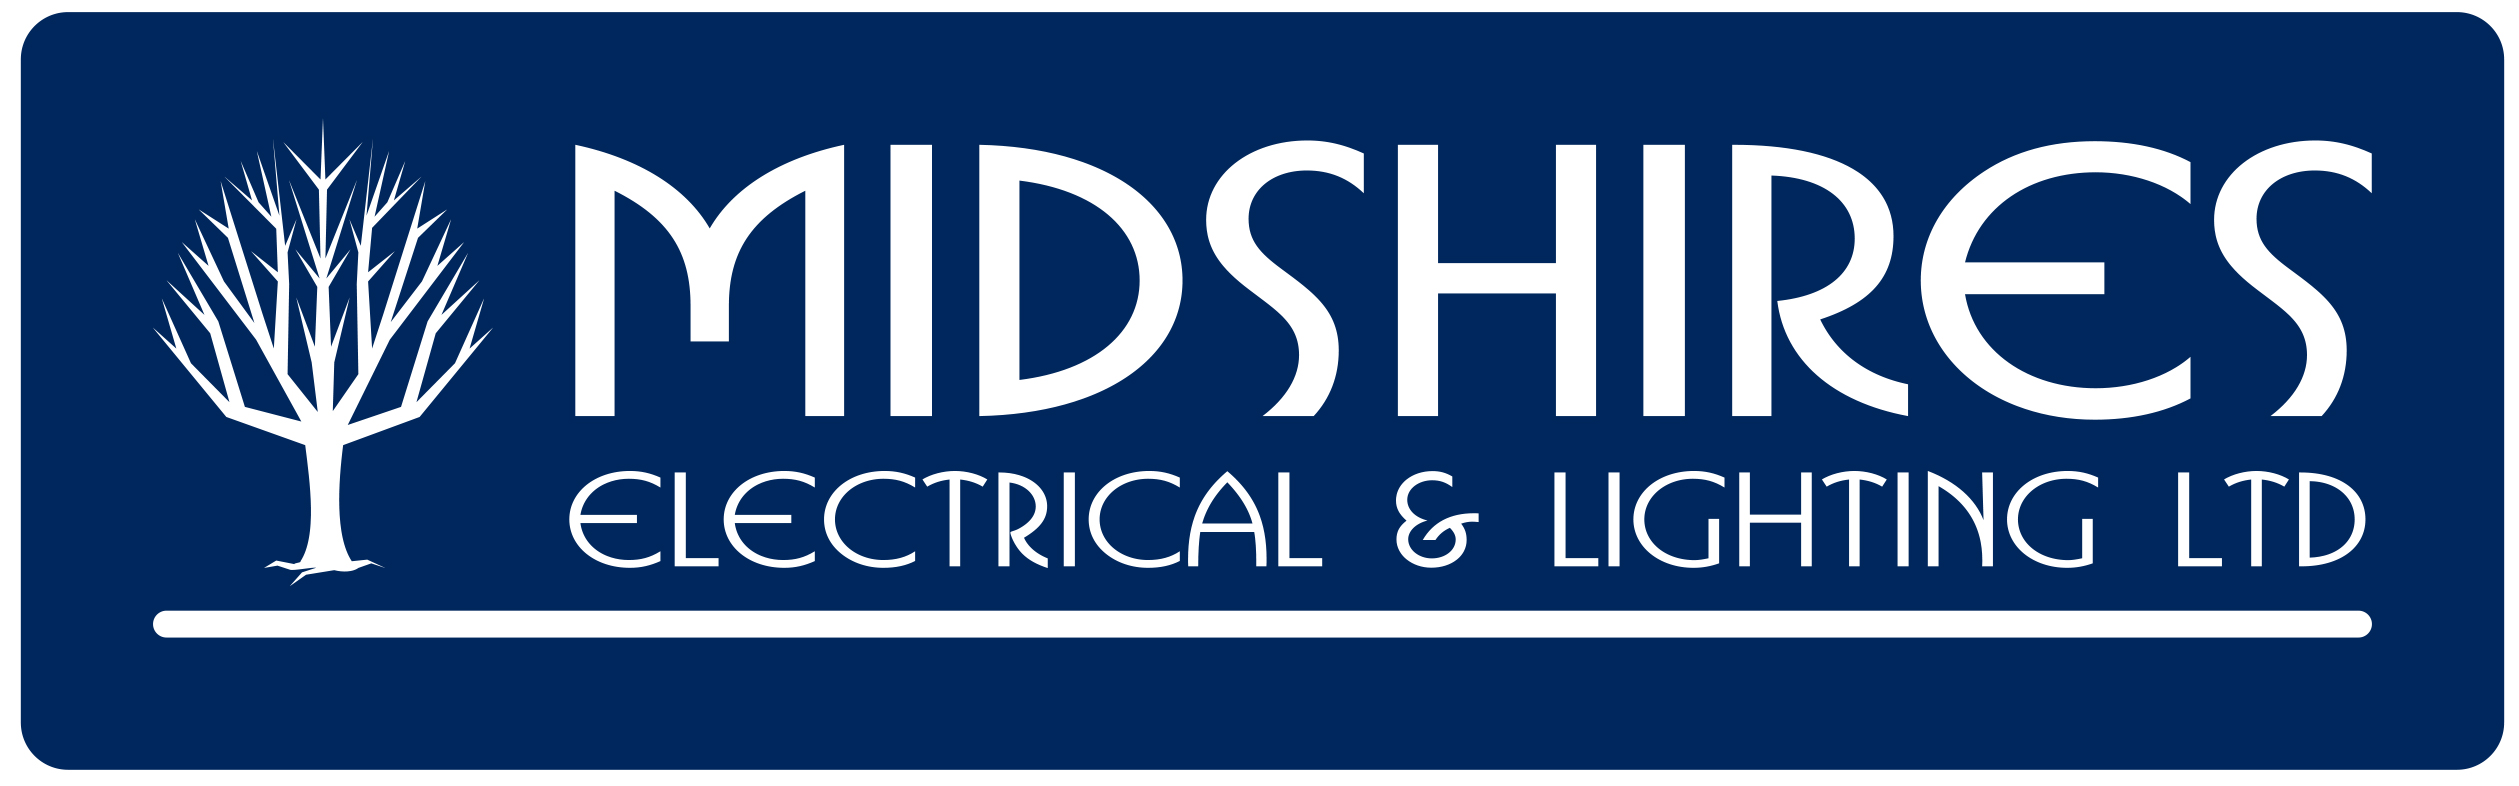 Midshires Electrical & Lighting Ltd Logo